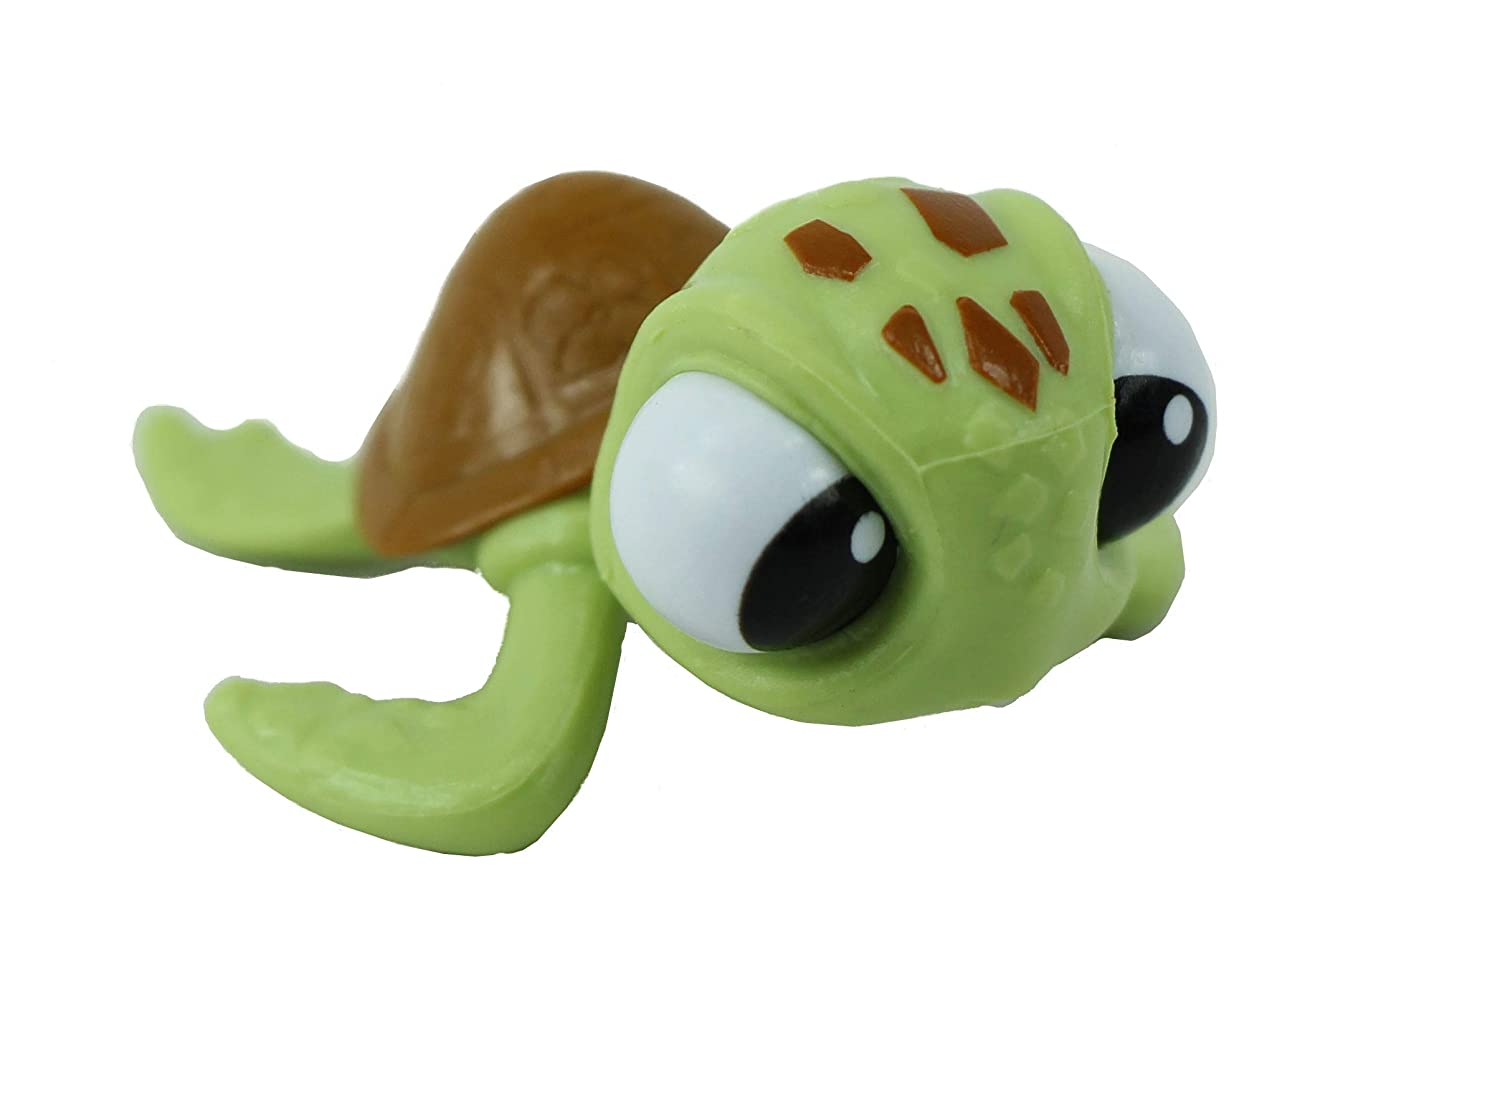 Finding Dory Disney Pixar Series 3 Collectible Figures Mystery Blind Party Bags Pack of 10